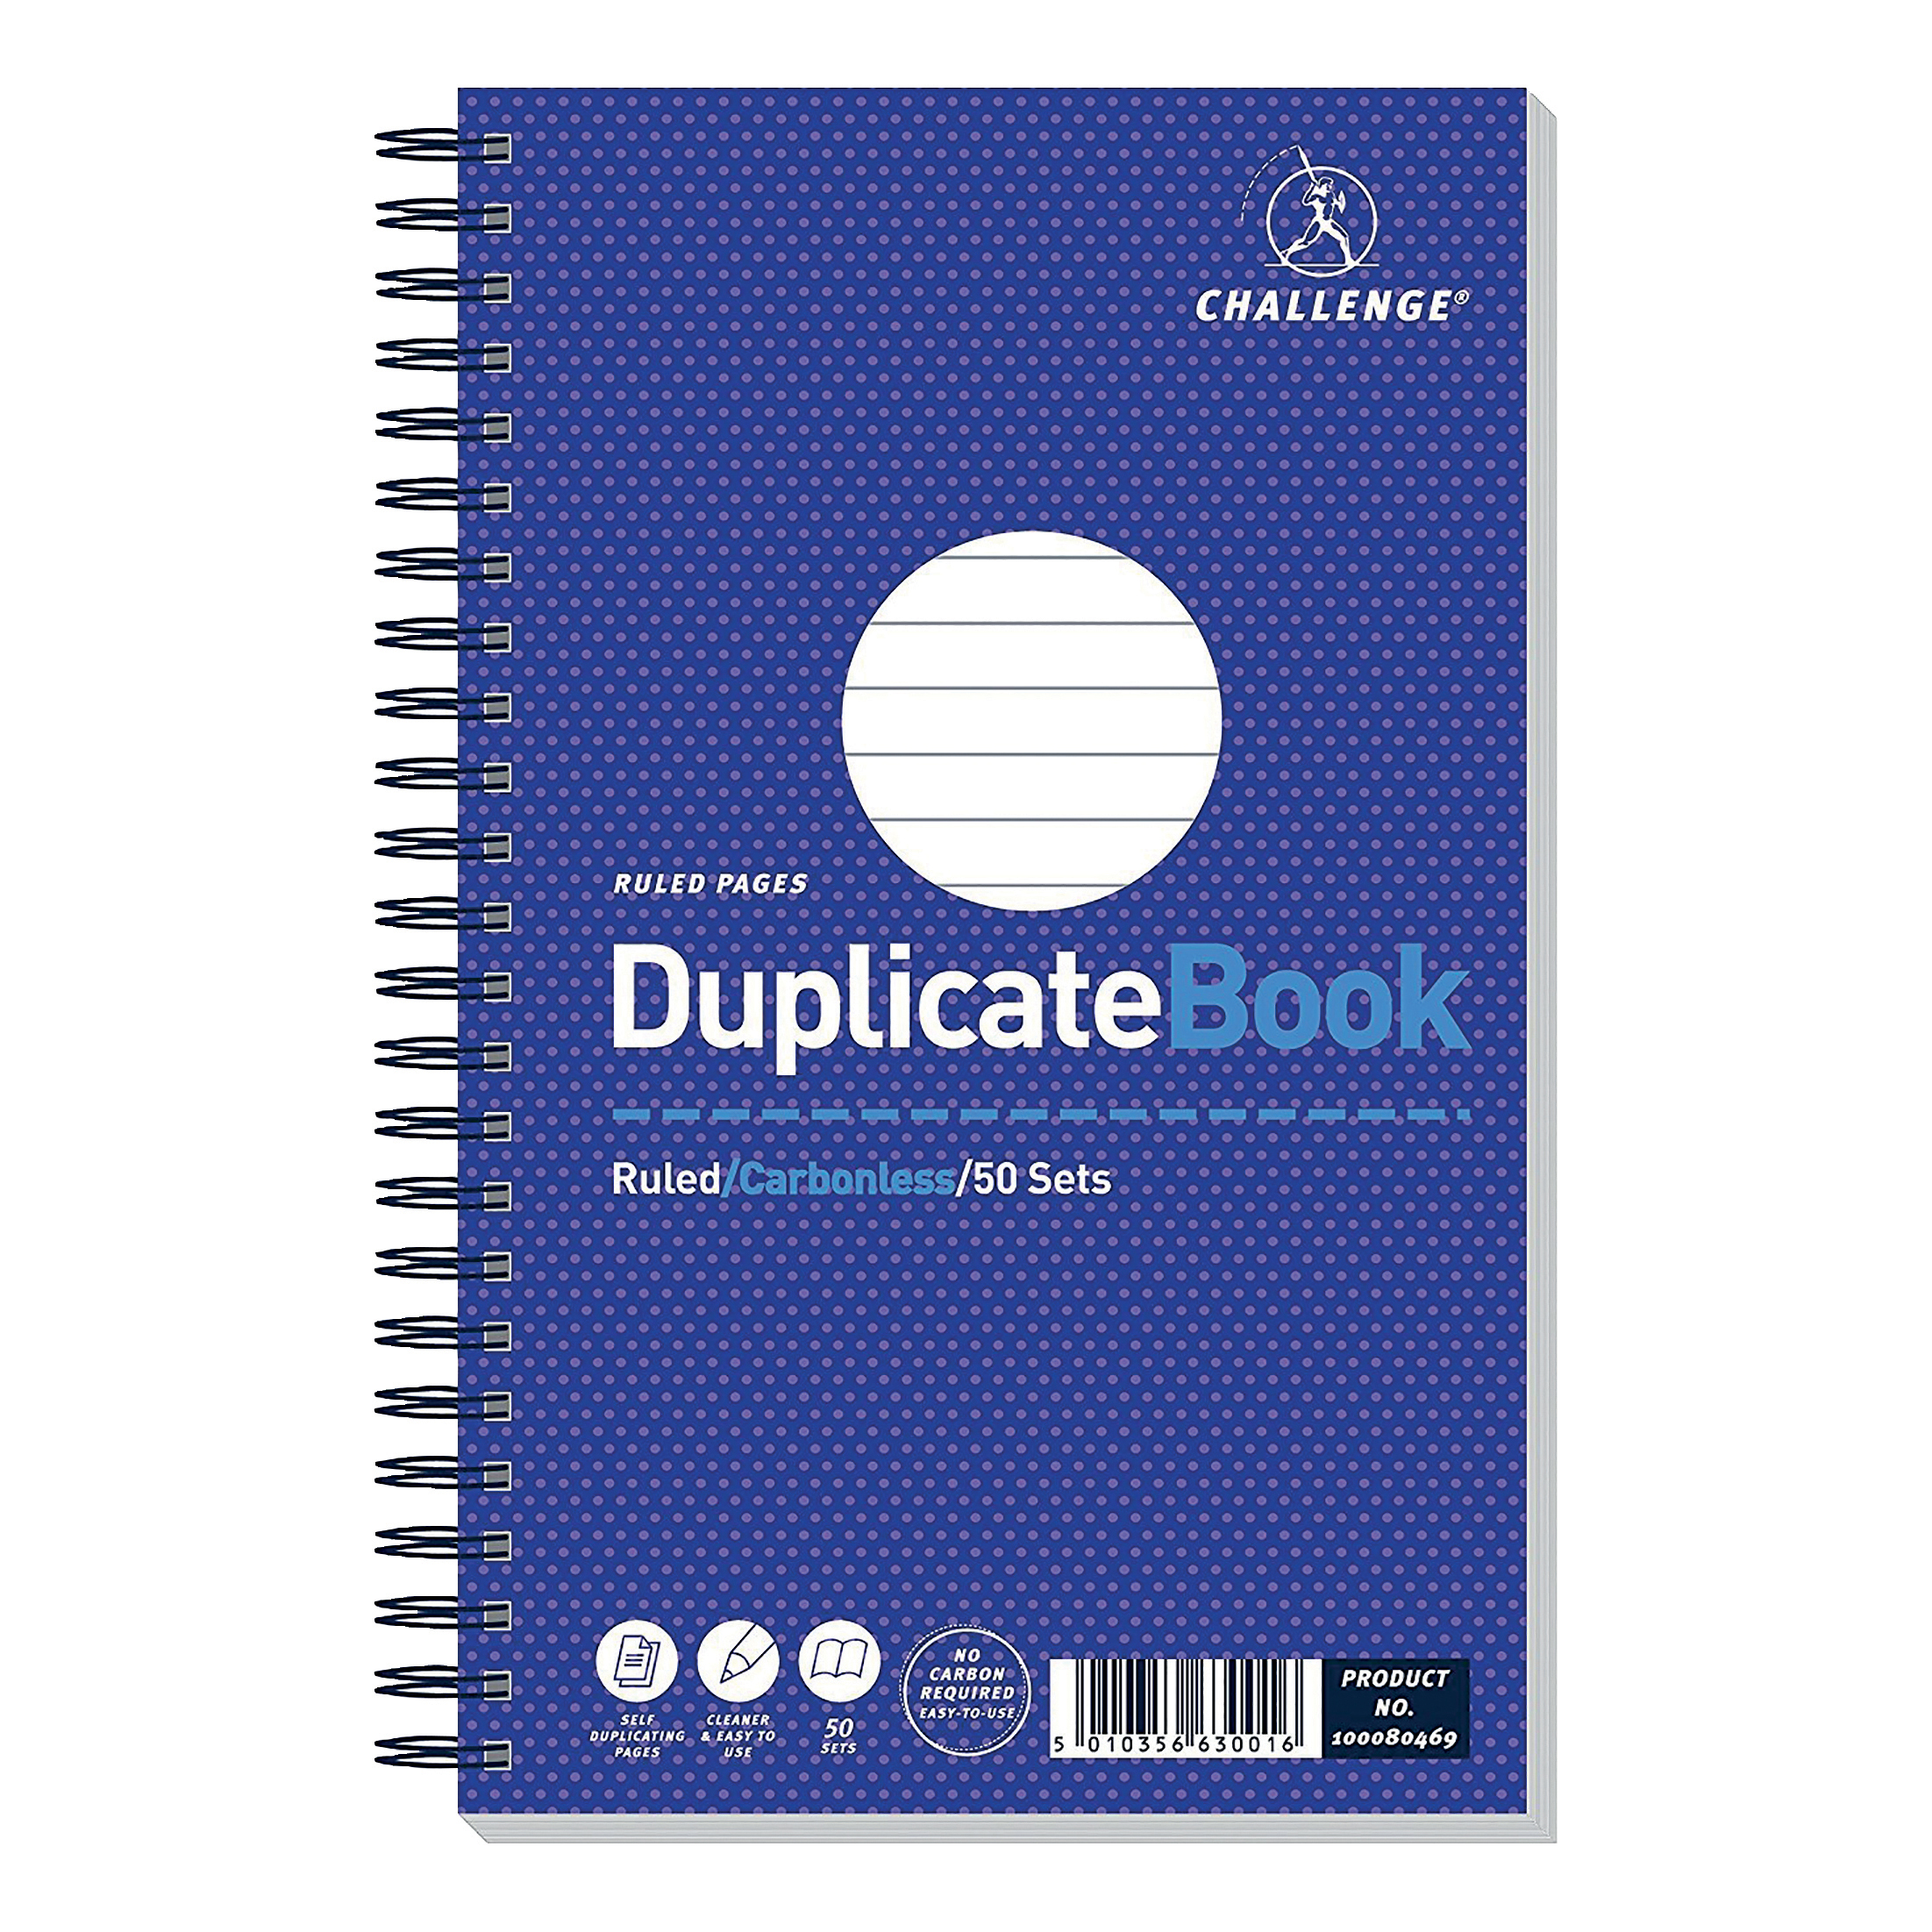 Duplicate Challenge Duplicate Book Carbonless Wirebound Ruled 50 Sets 210x130mm Ref 100080469 [Pack 5]